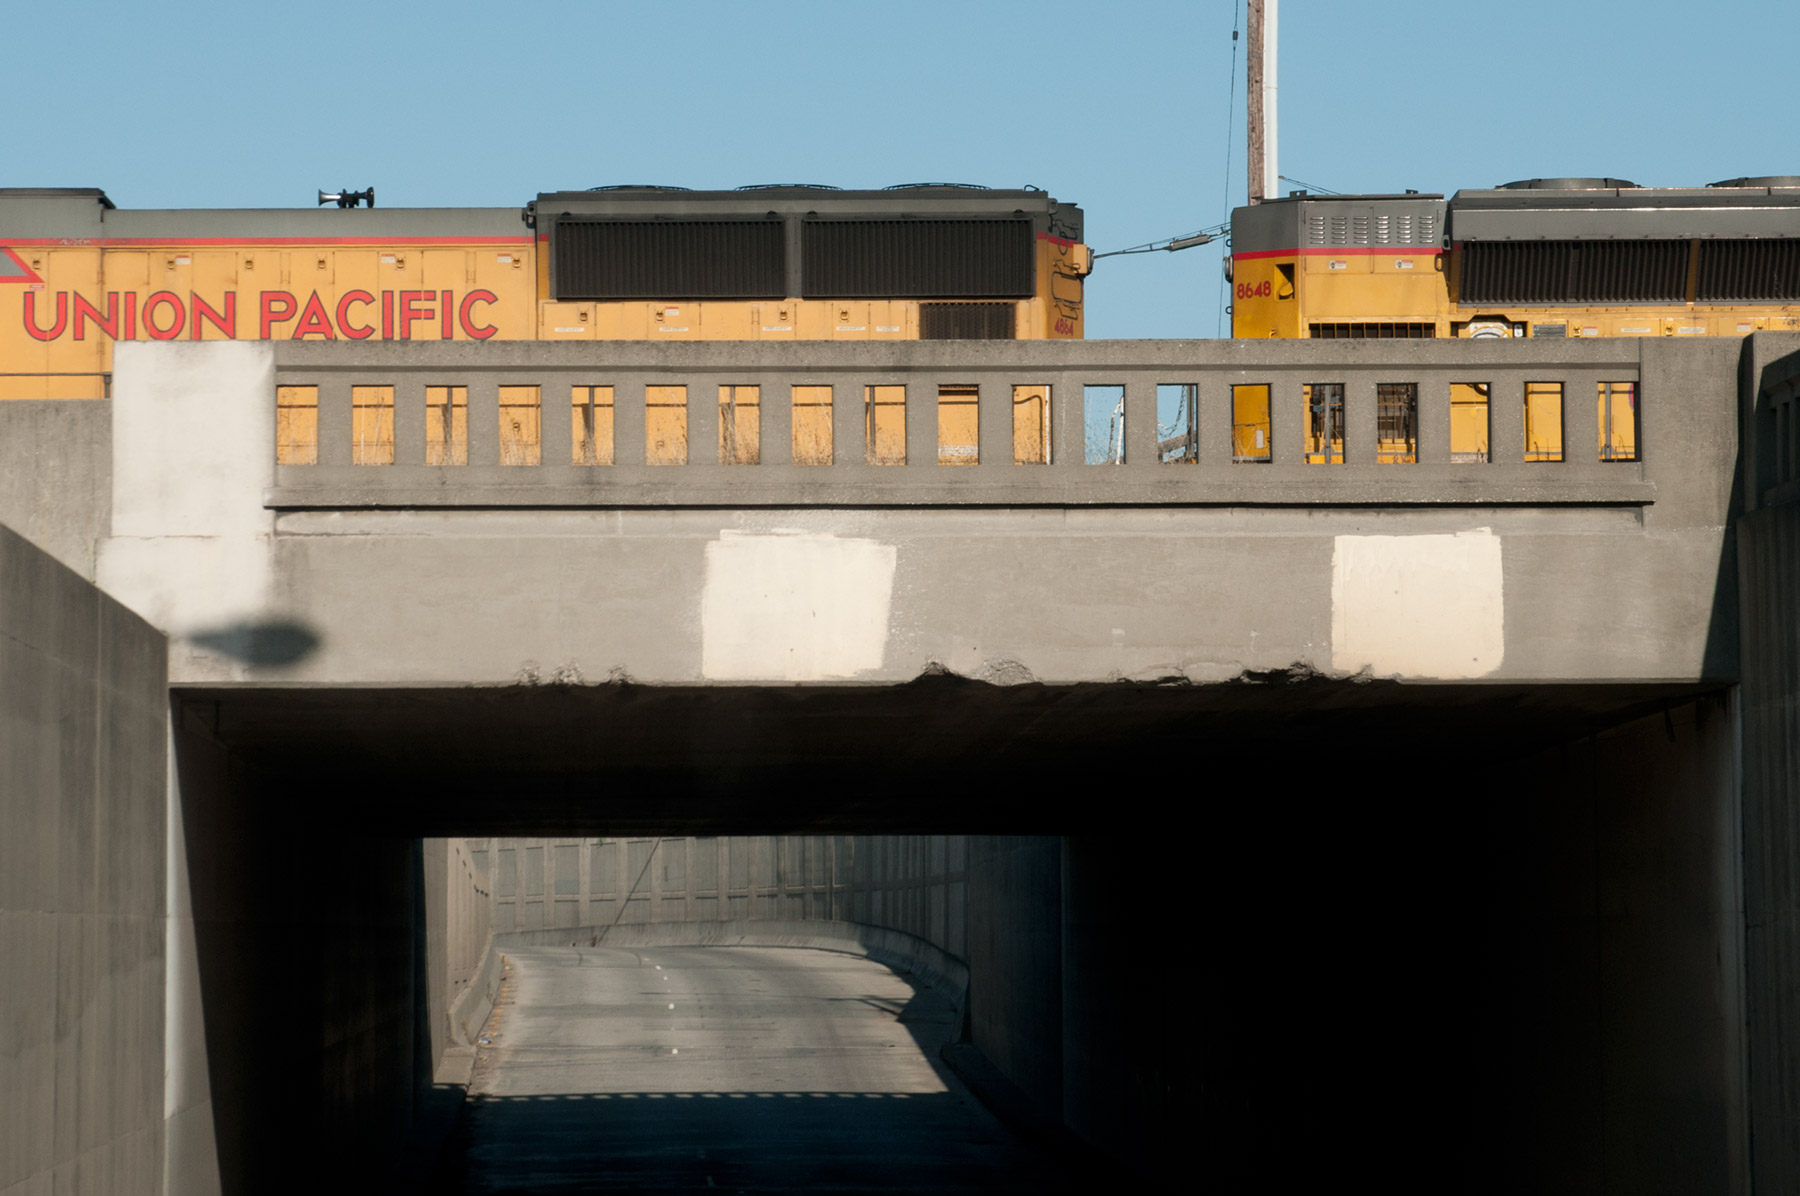 Union Pacific diesel locomotives crossing over West 7th, Oakland, California.